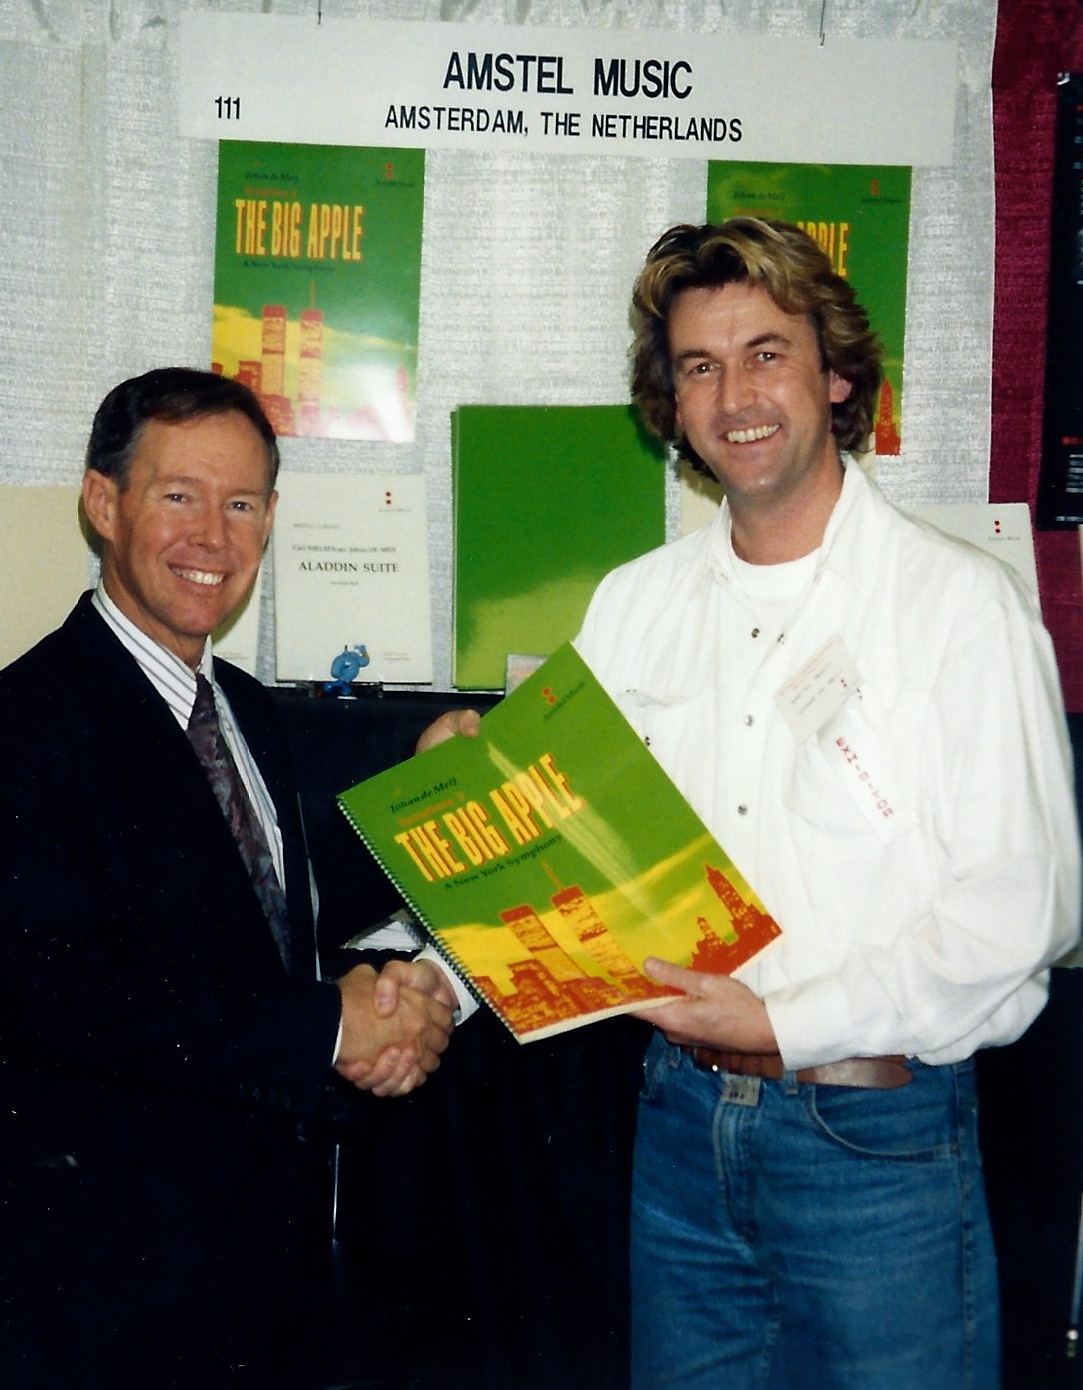 Presenting the published score to Alan Bonner, at the Midwest Band Clinic in Chicago, December 1994